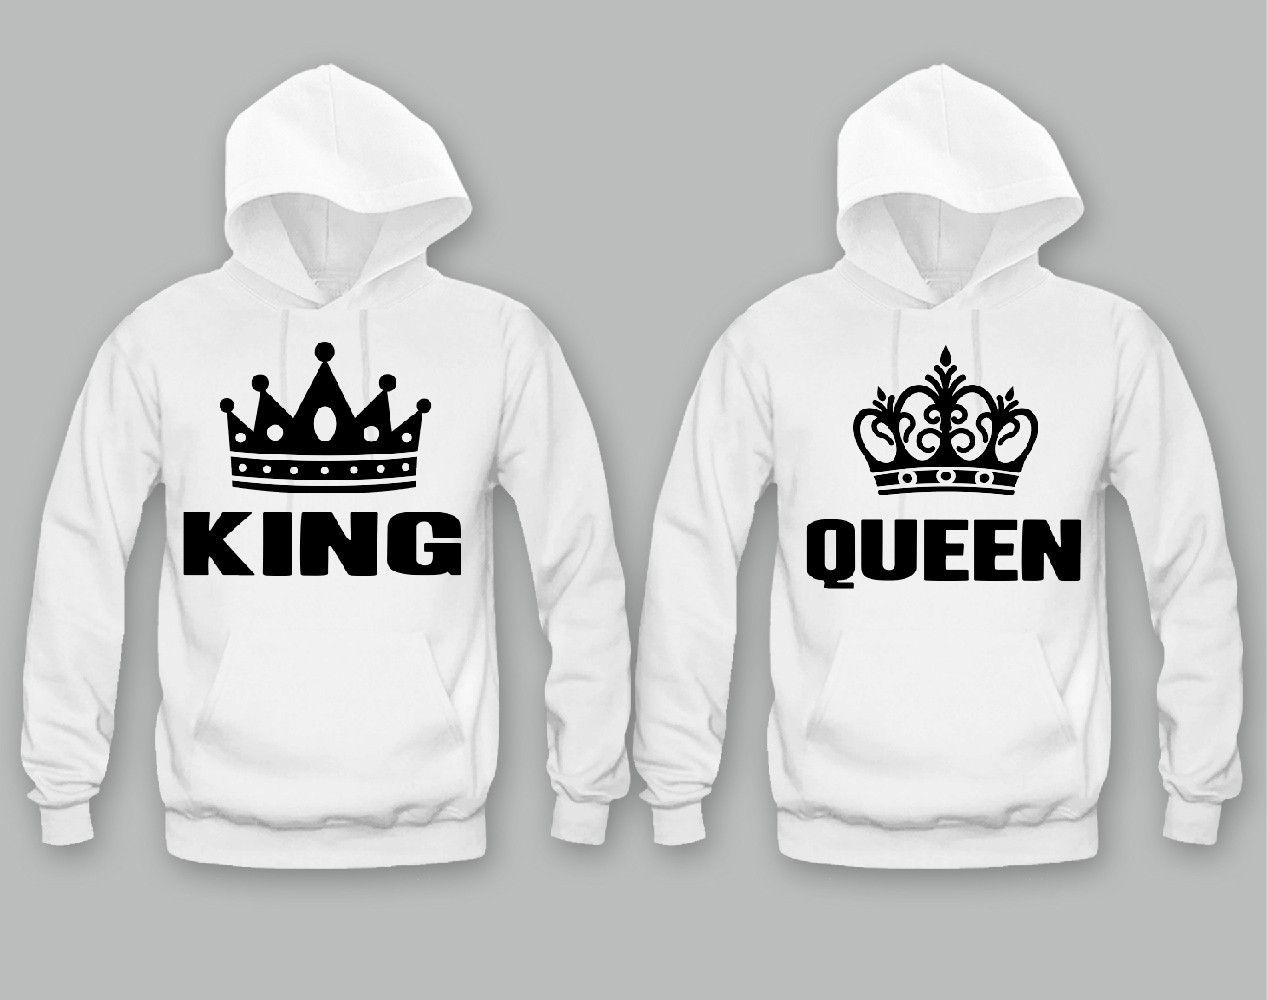 King And Queen Unisex Couple Matching Hoodies Matching Hoodies Cute Couple Shirts Couples Hoodies